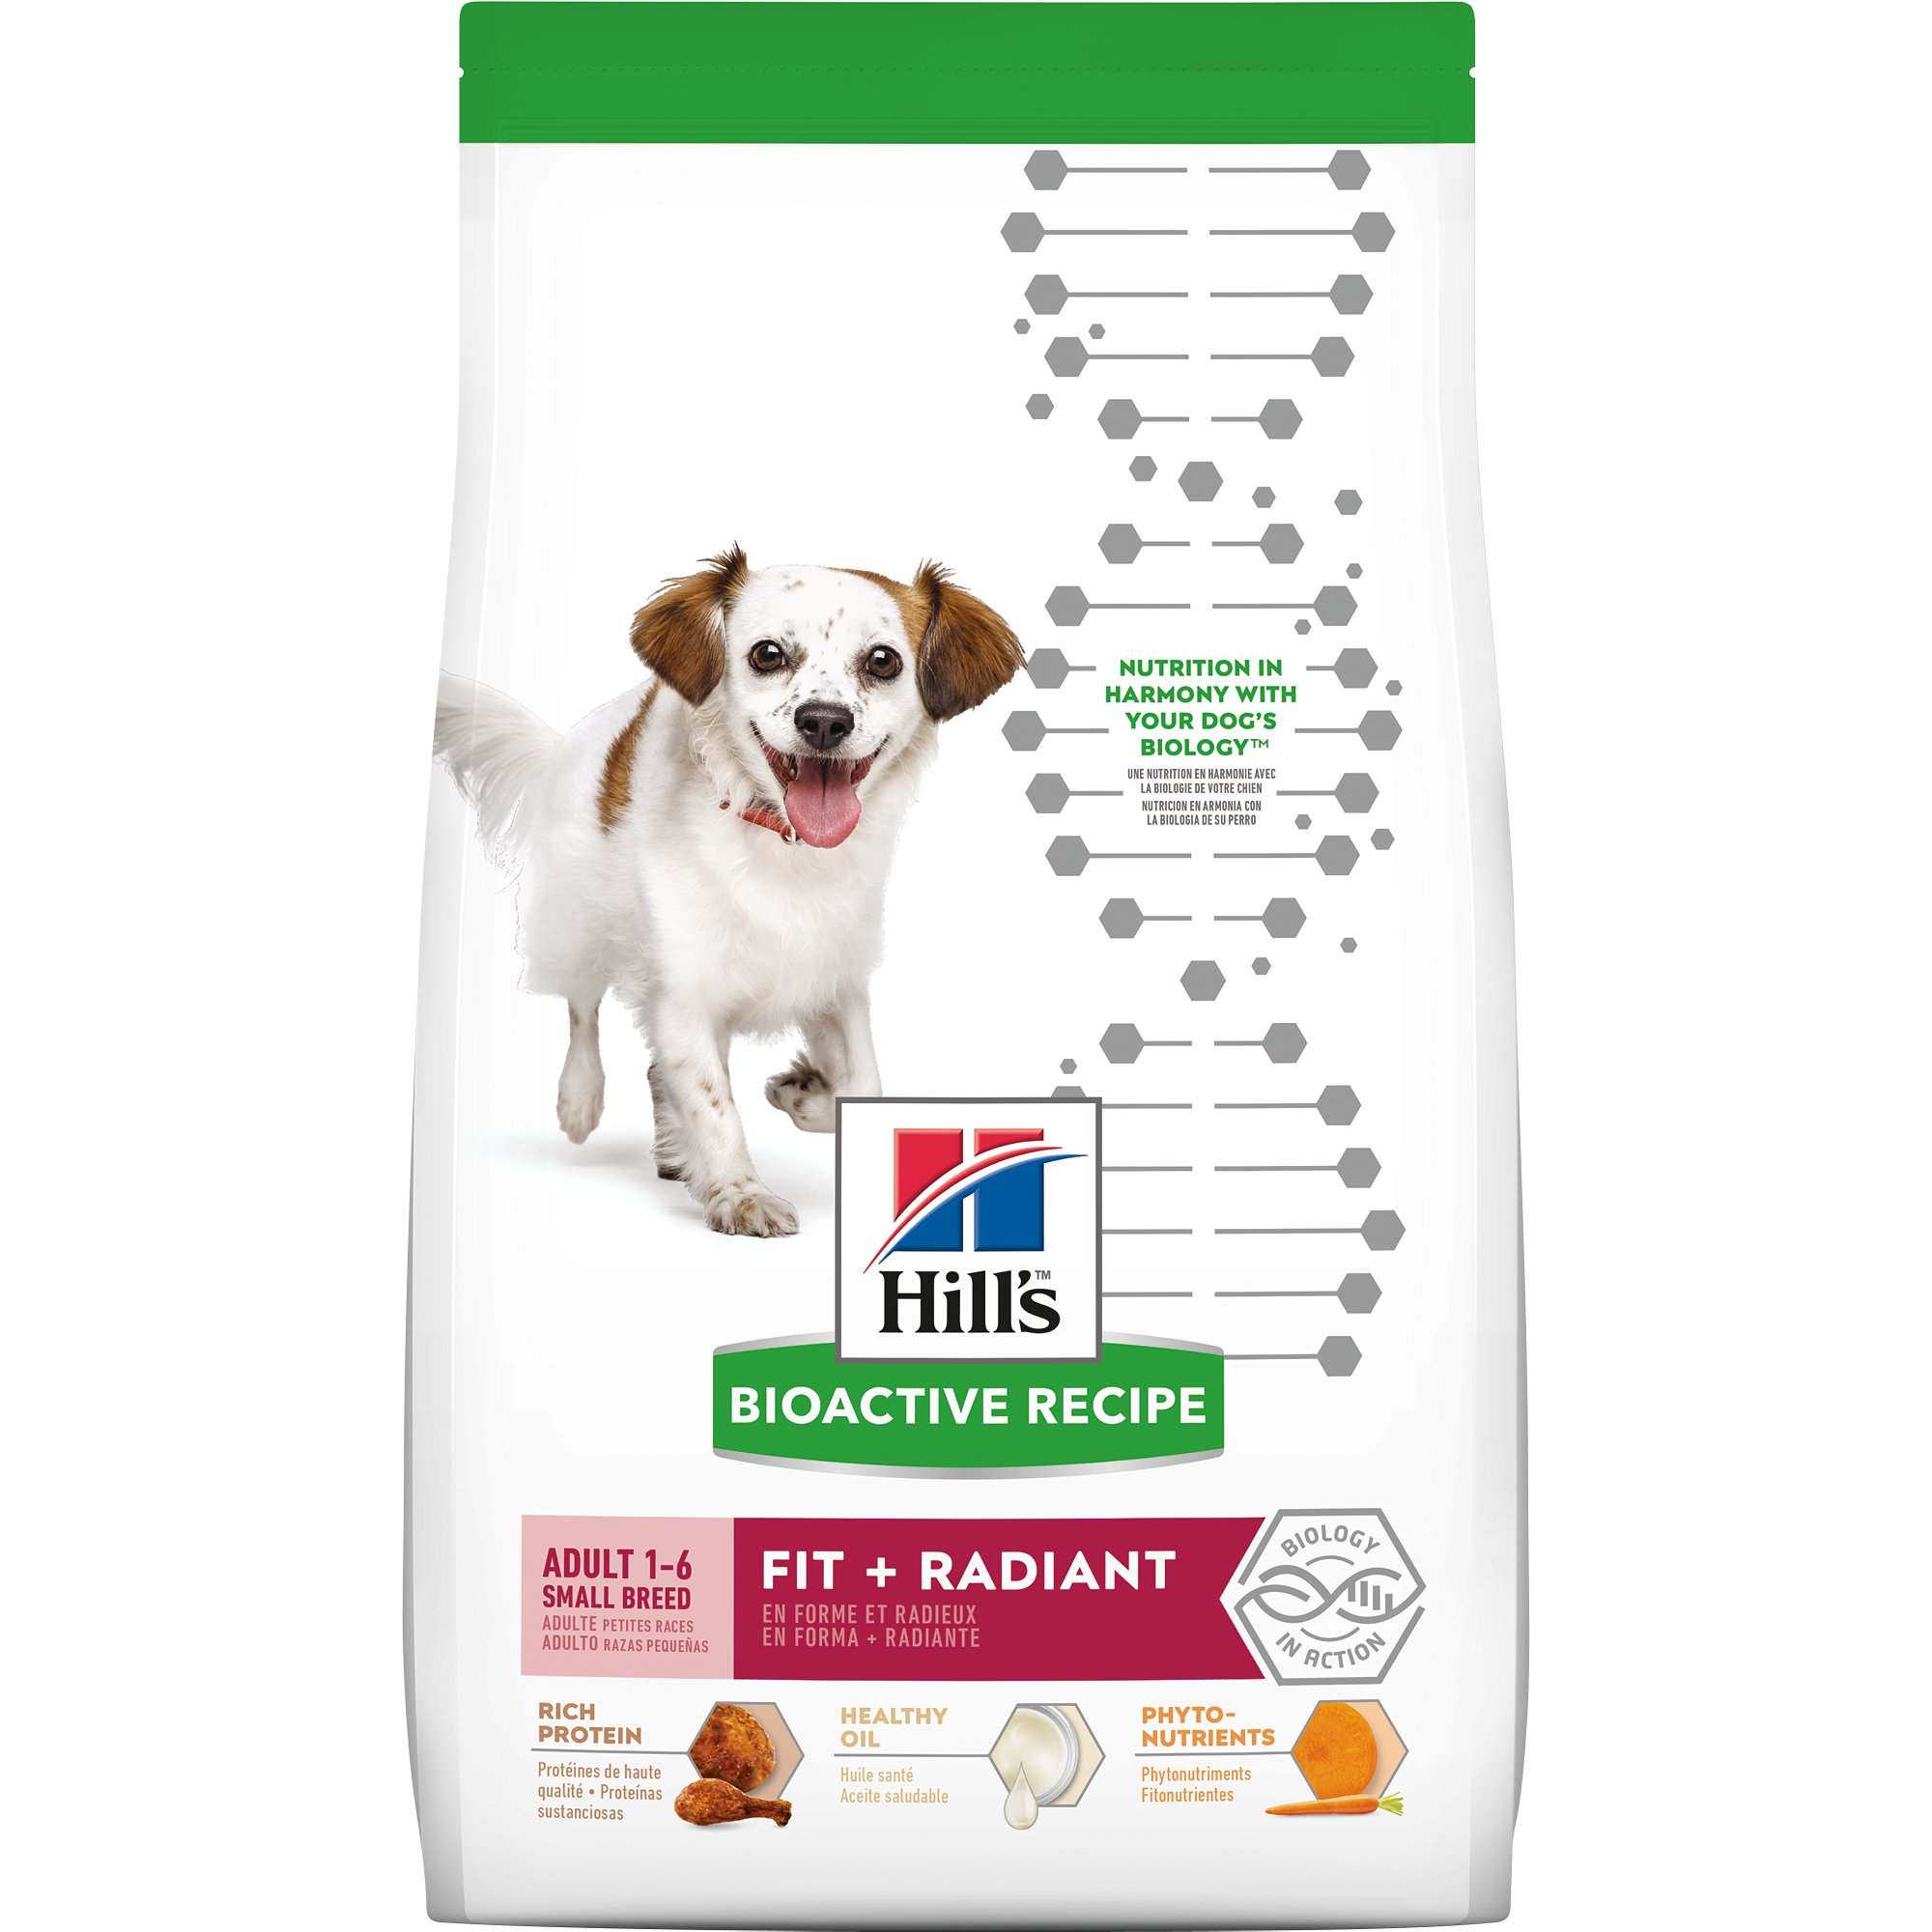 Hill's Bioactive Recipe Fit + Radiant Chicken & Barley Adult Small Breed Dry Dog Food, 3.5 lbs.